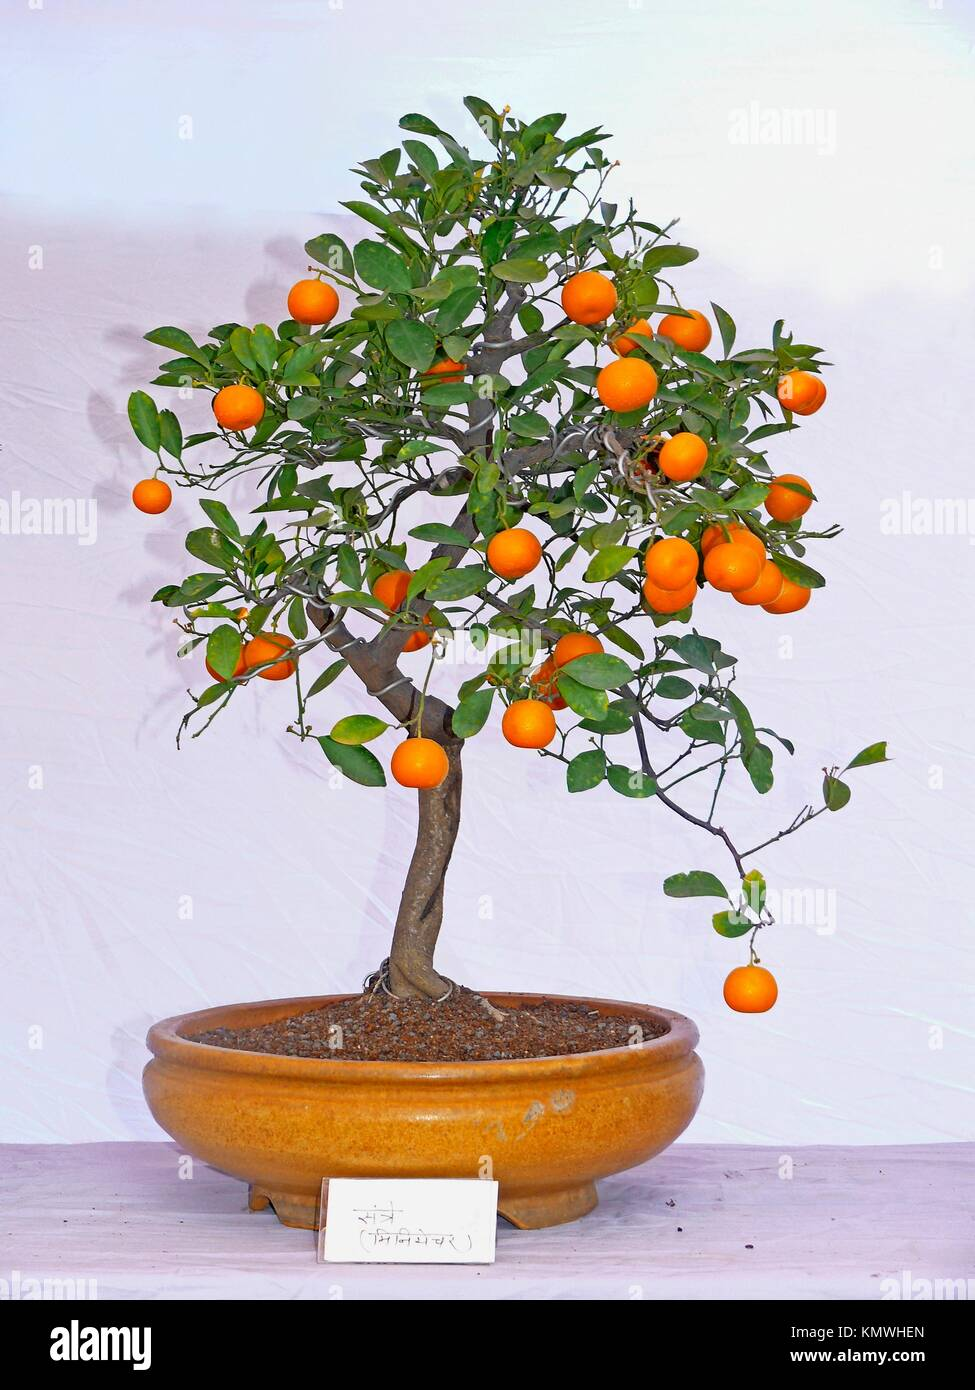 Orange Fruit Bonsai Tree High Resolution Stock Photography And Images Alamy